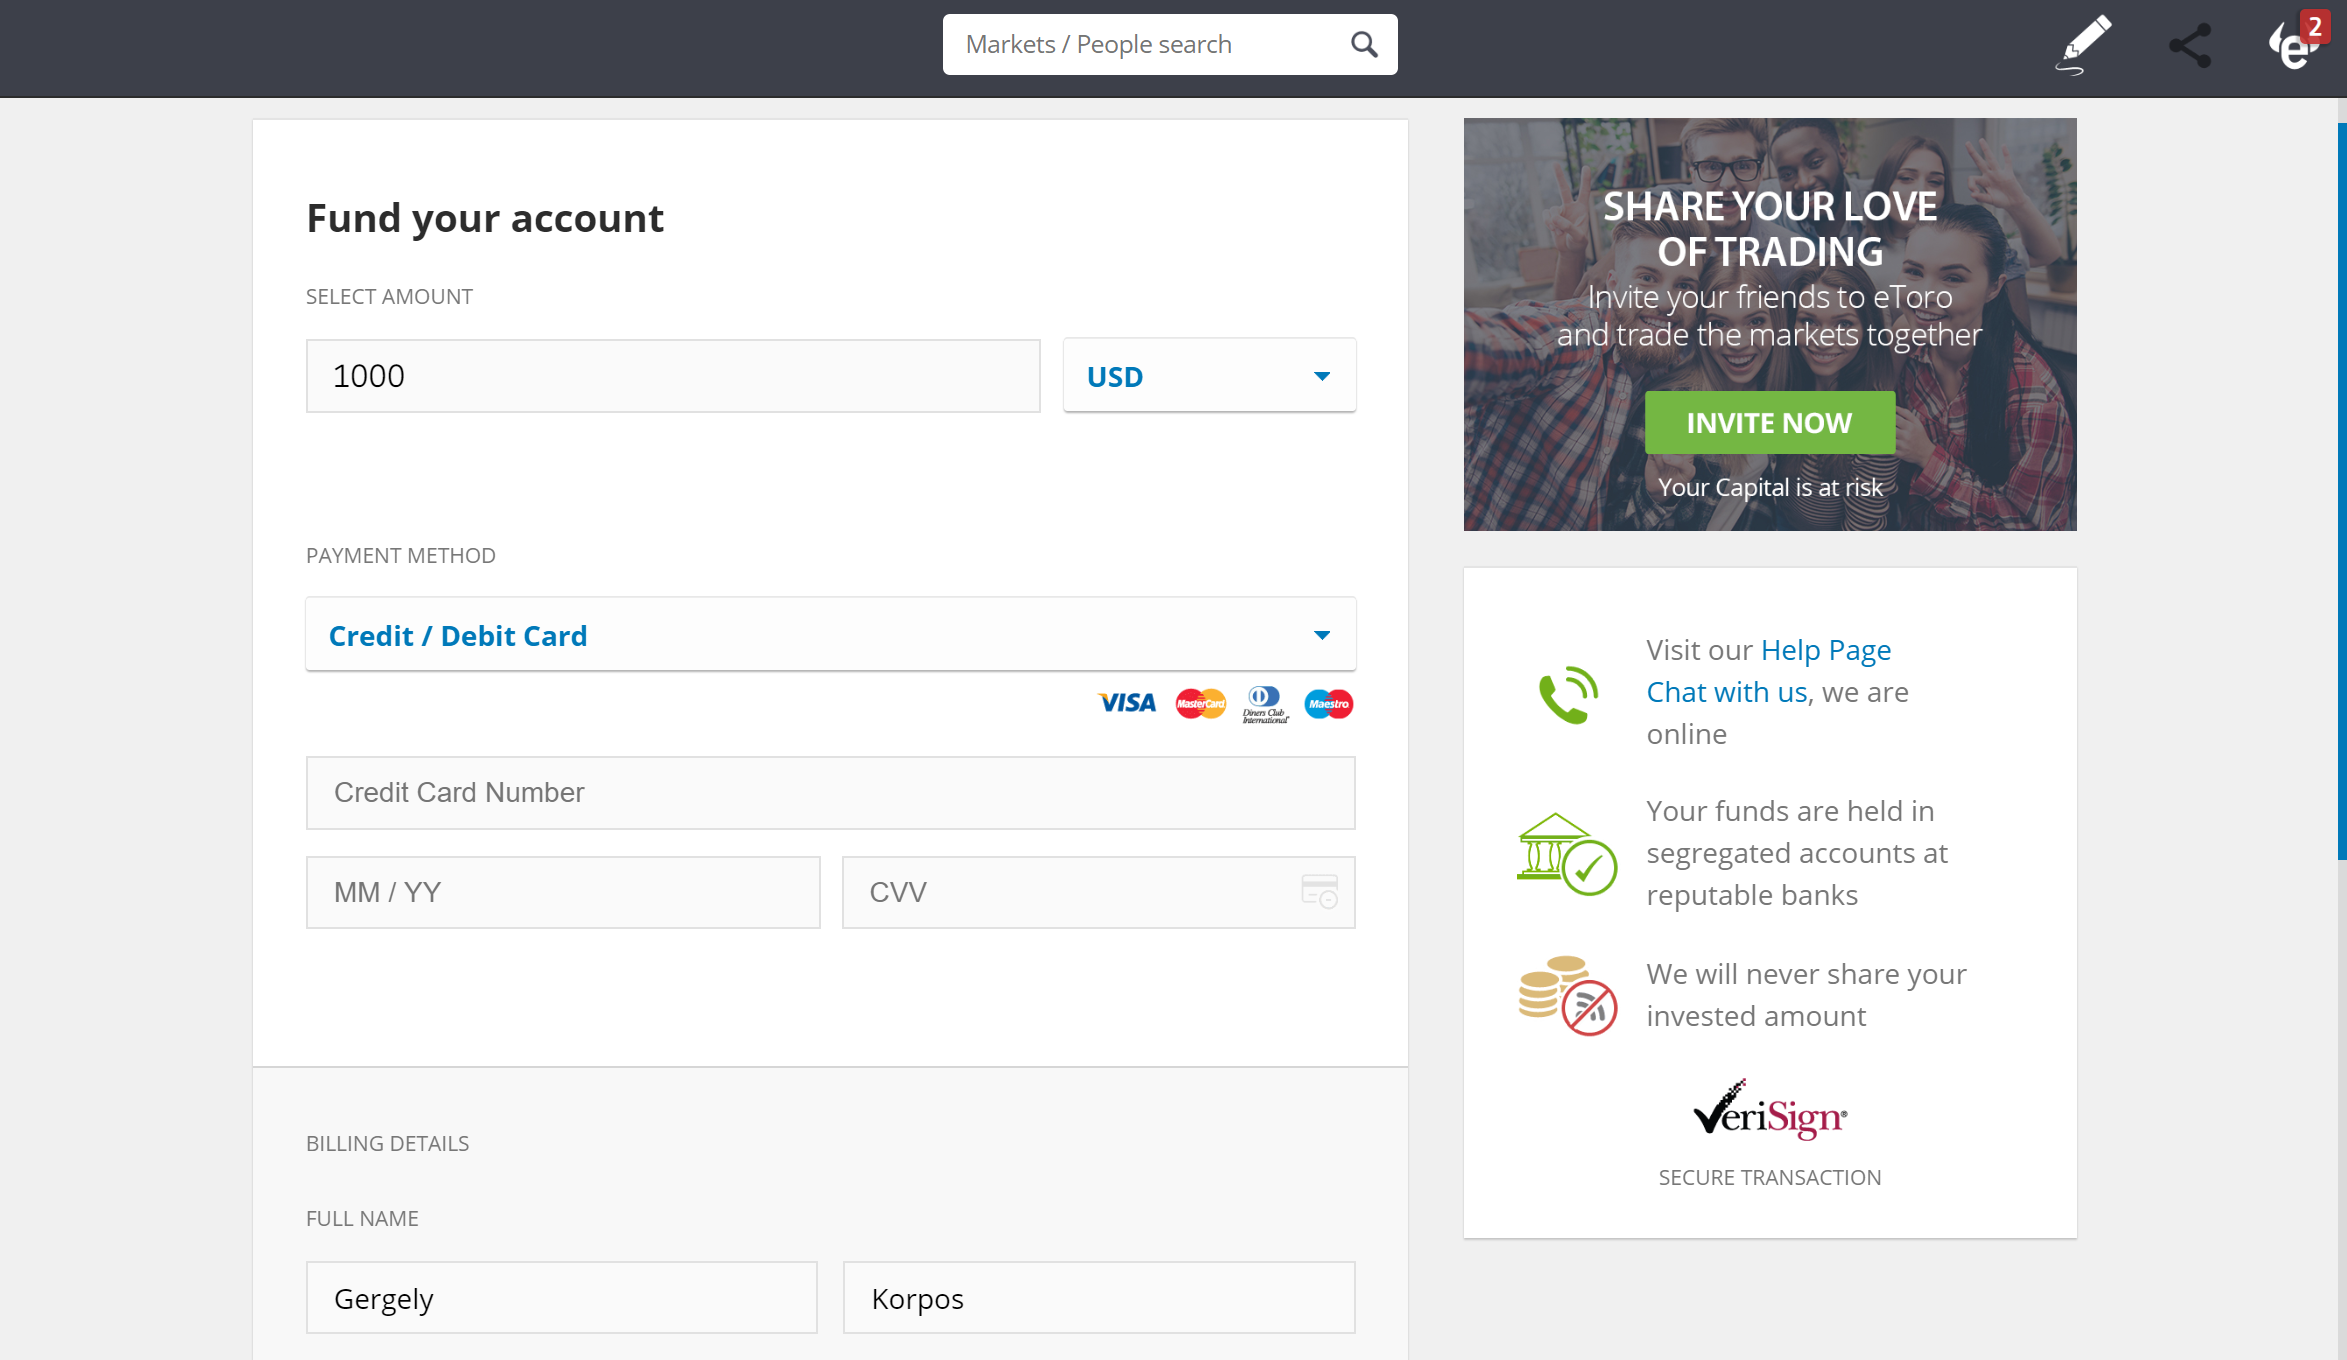 Etoro review - Deposti and Withdrawal - Deposit